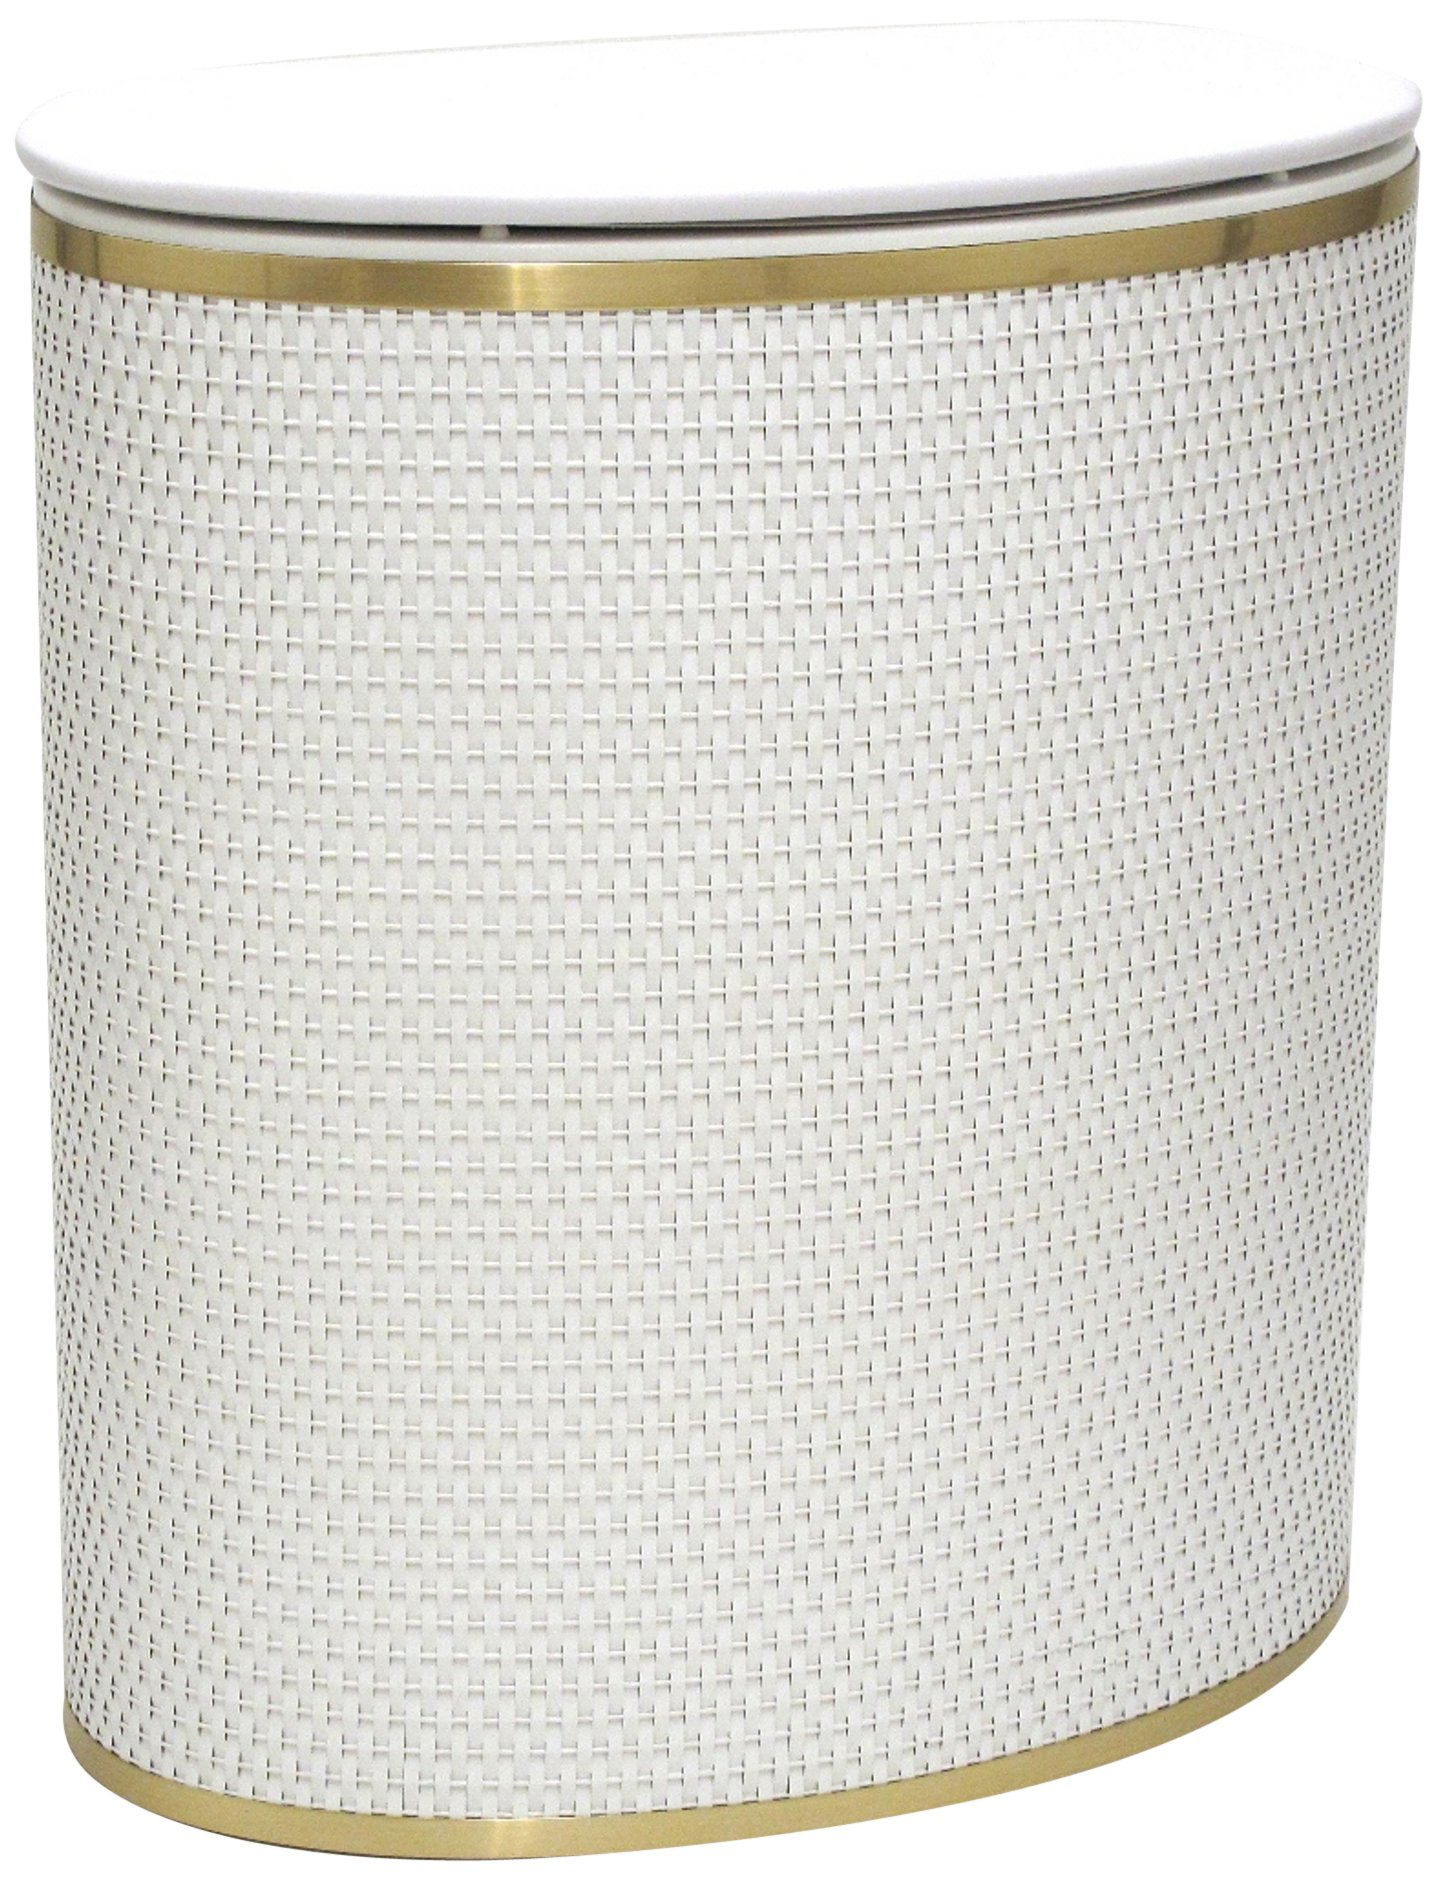 Redmon Capri Classic Bowed Front Hamper, White/Gold - Oval shaped wicker hamper with matching vinyl lid Brush metallic trim around top and bottom Quality materials and construction, made in 100Percent in usa - laundry-room, hampers-baskets, entryway-laundry-room - 81vqVDtJIUL -